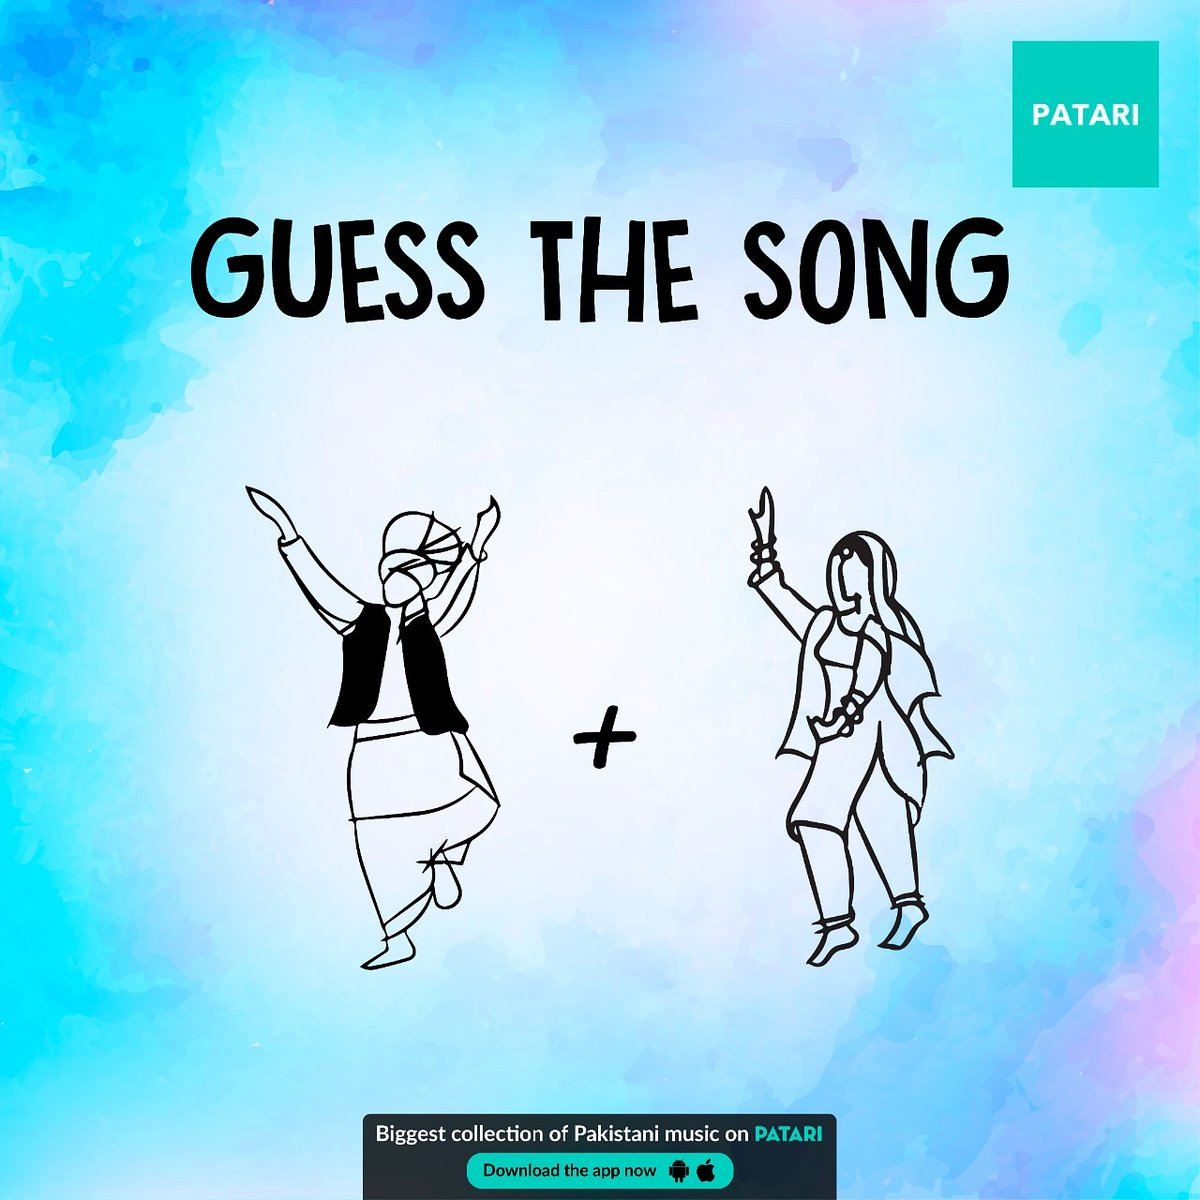 Yaaaayyy!!! We are back with Guess the Song doodles after a long break! To bataein phir which song topped our desi chart shows in early 90s? Clues on patari.pk #PatariDoodle #MeraMusic #MeriPatari #GuessTheSong